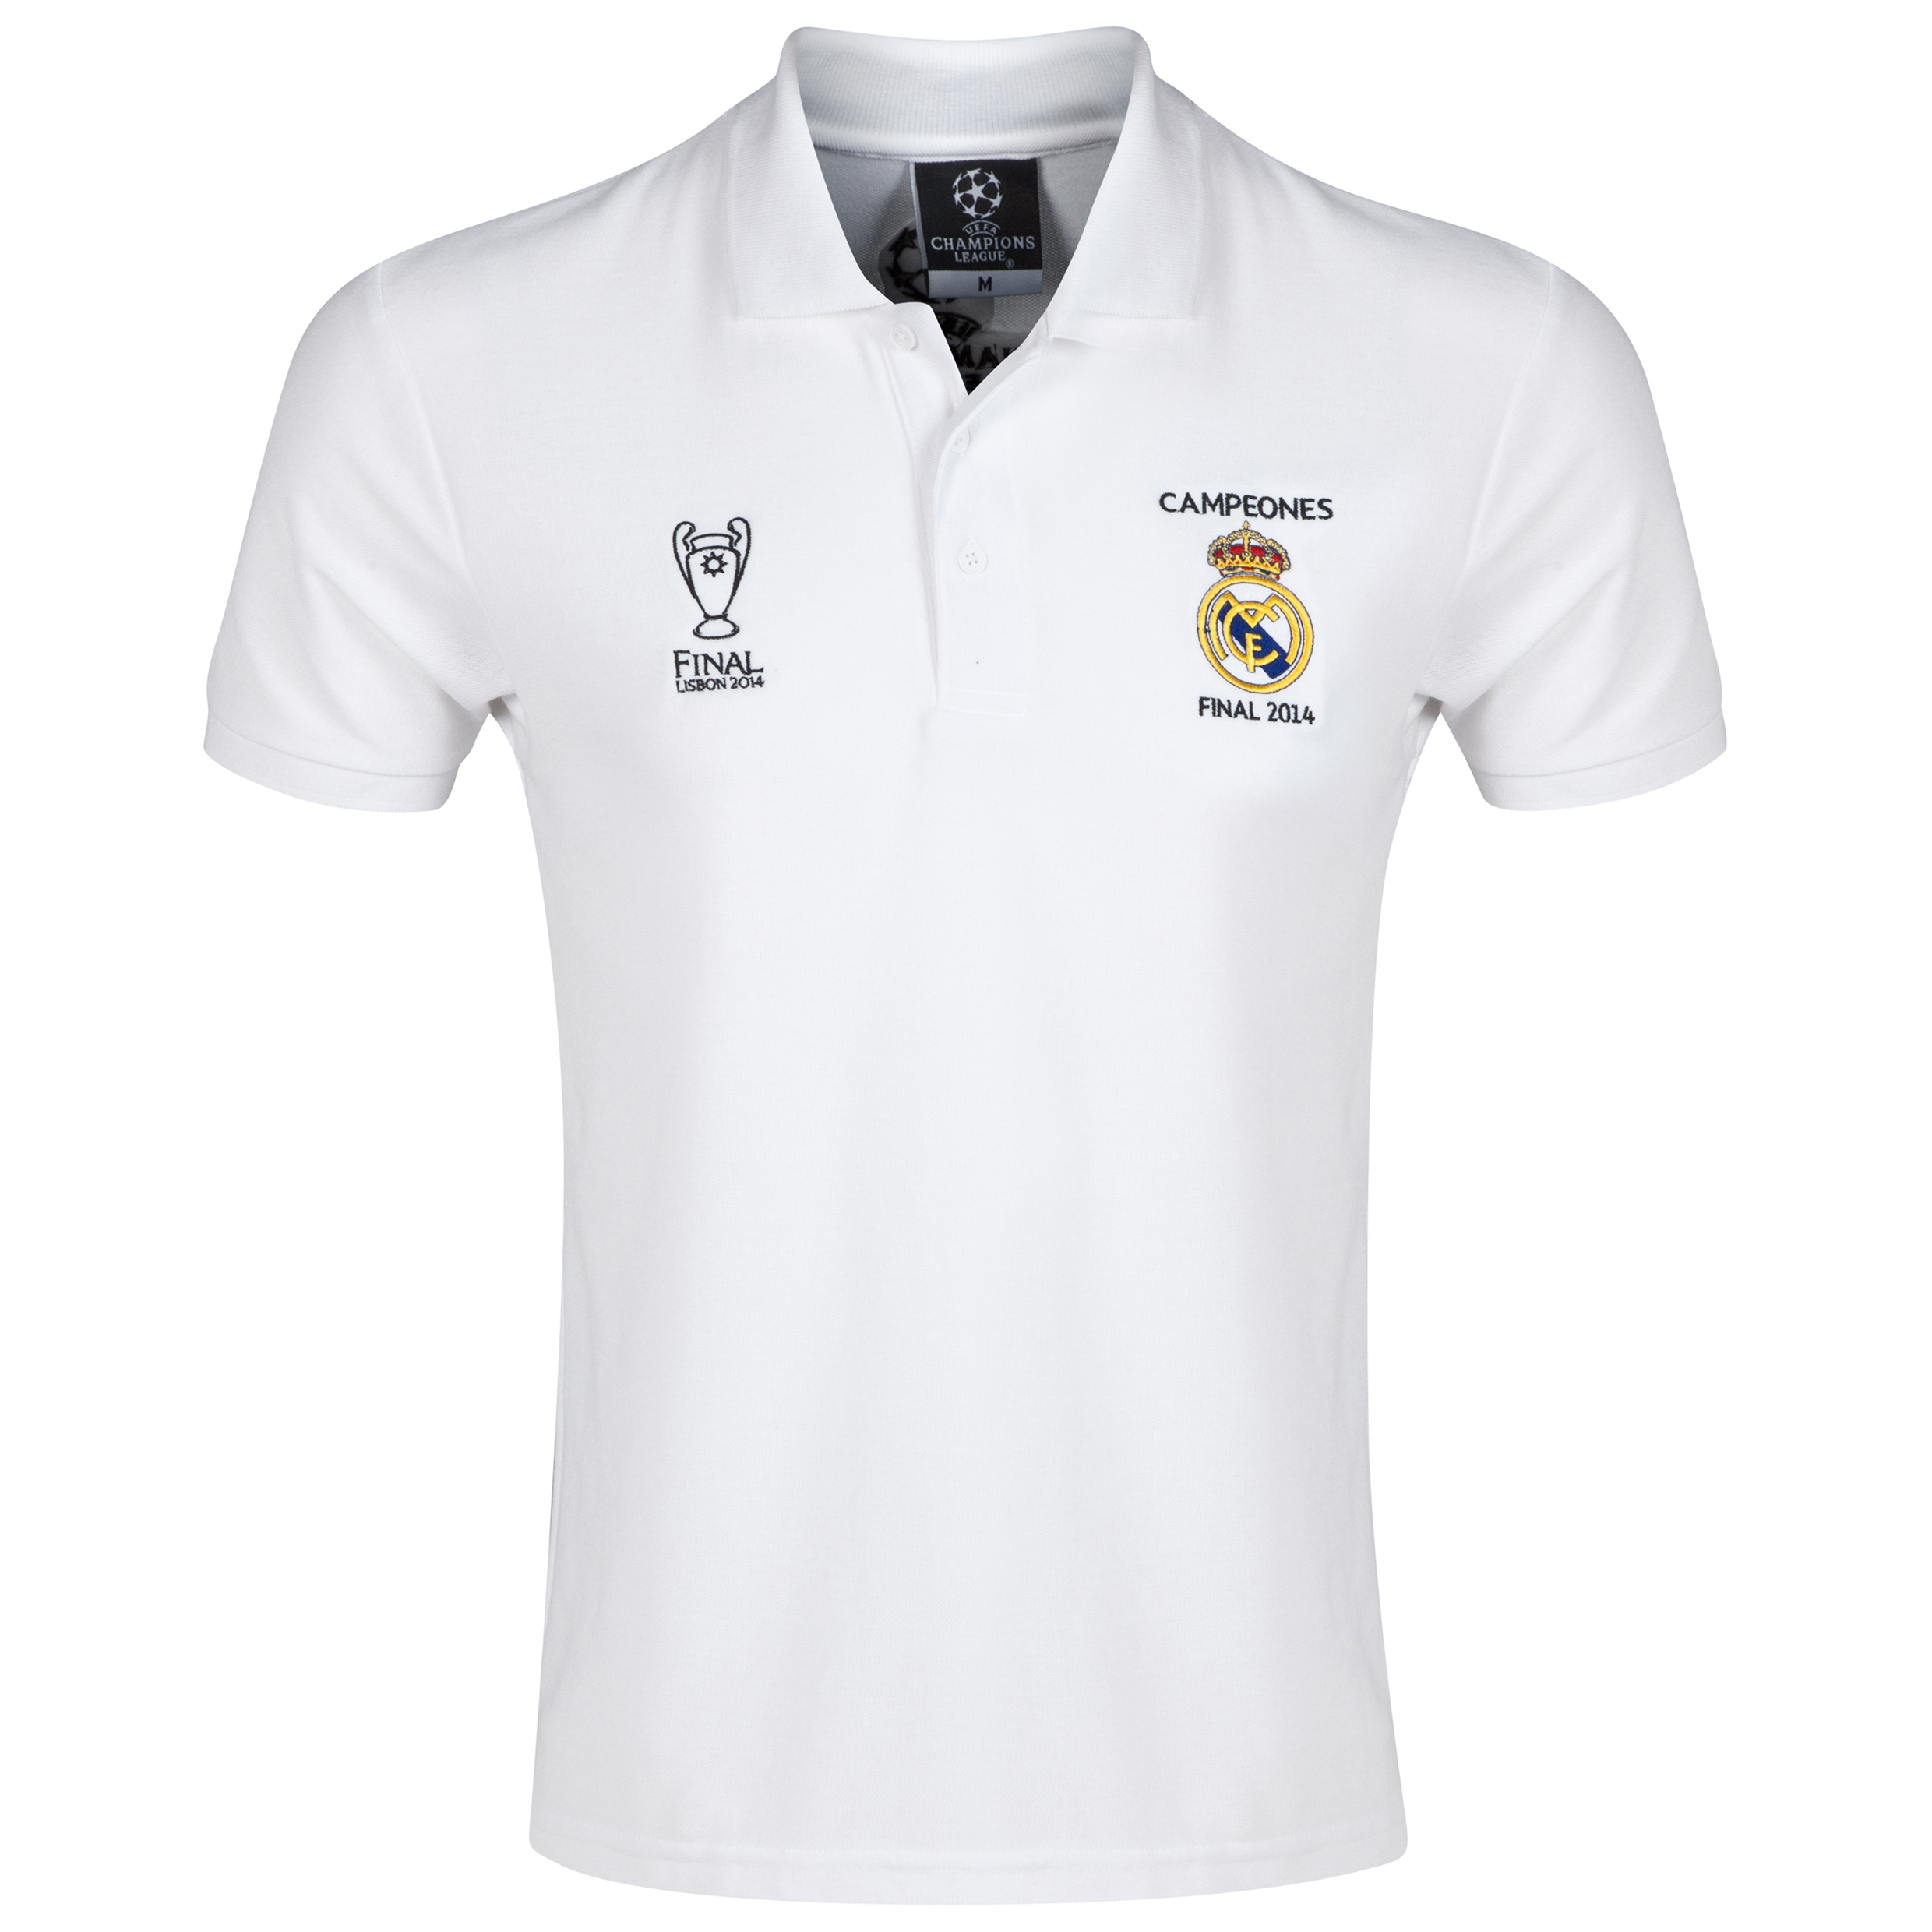 Real Madrid UCL Winners 2014 Campeones Polo